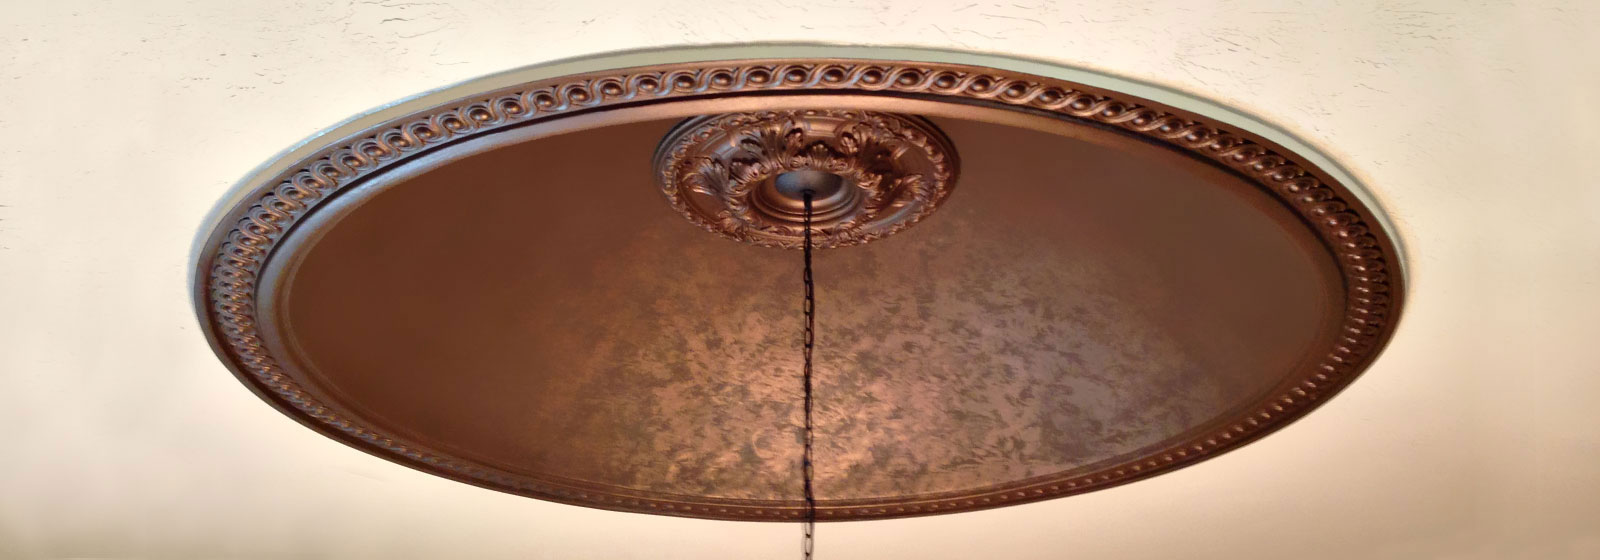 Recessed Ceiling Domes